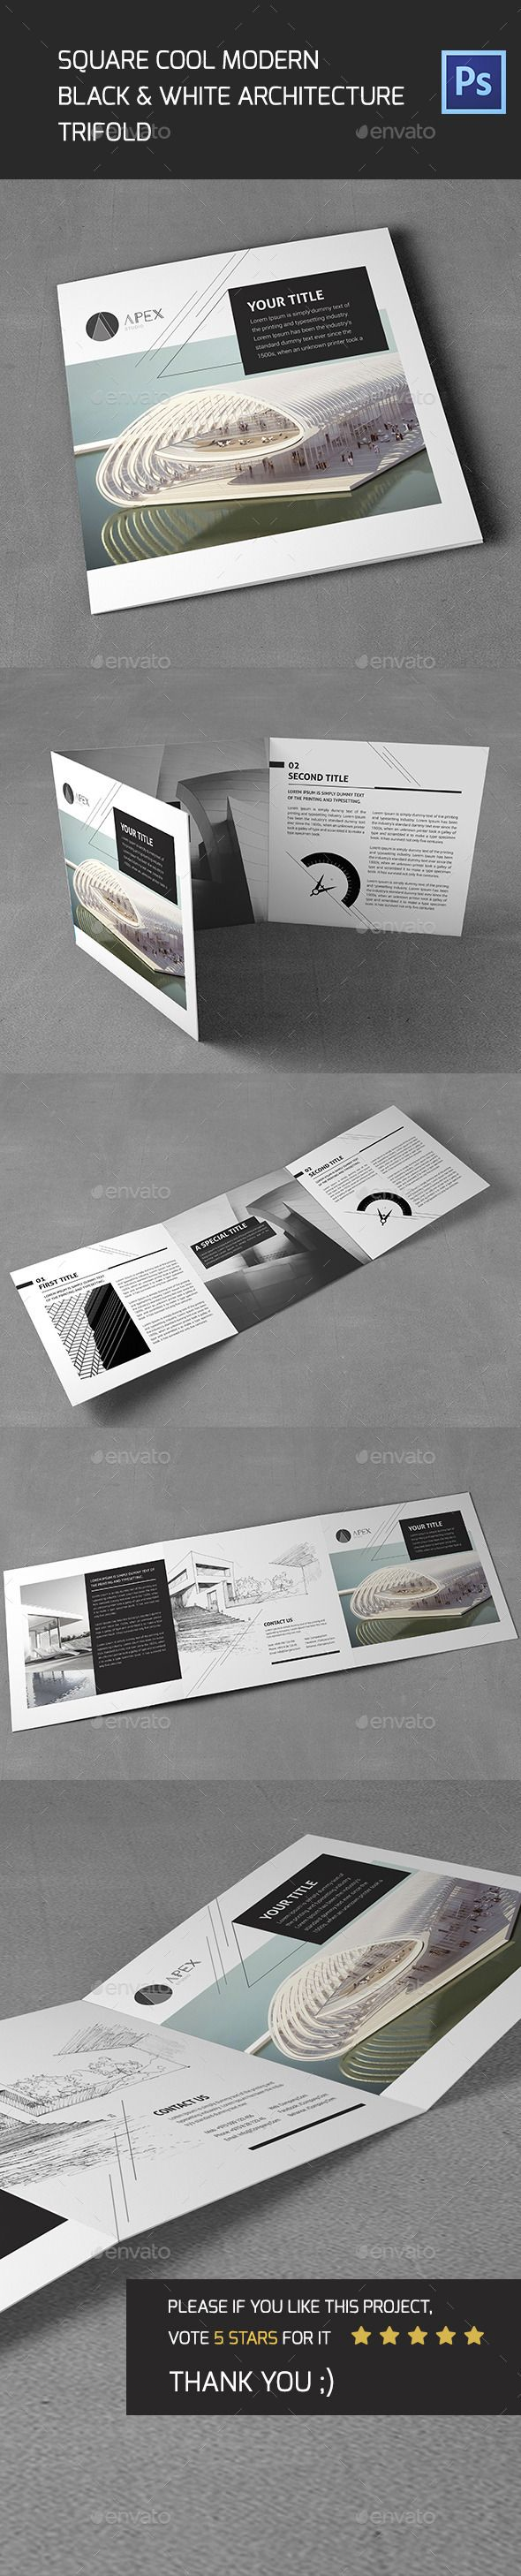 Square Cool Modern Architecture Trifold Template #design Download: http://graphicriver.net/item/square-cool-modern-architecture-trifold/11788009?ref=ksioks